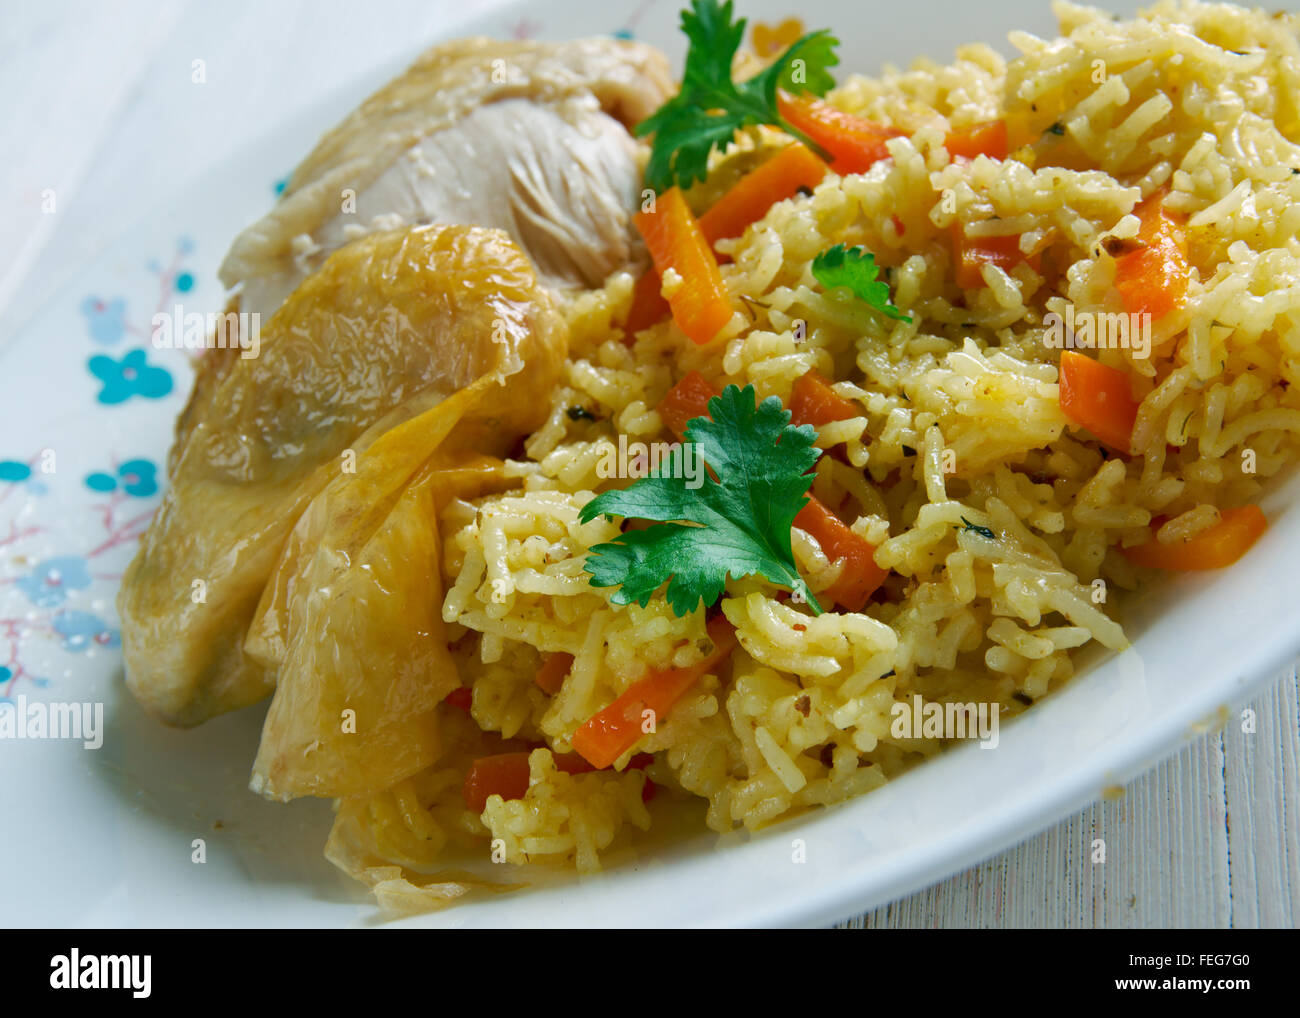 Cuisines Similar To Indian Kenyan Chicken Biryani Similar Indian Biryan African Cuisine